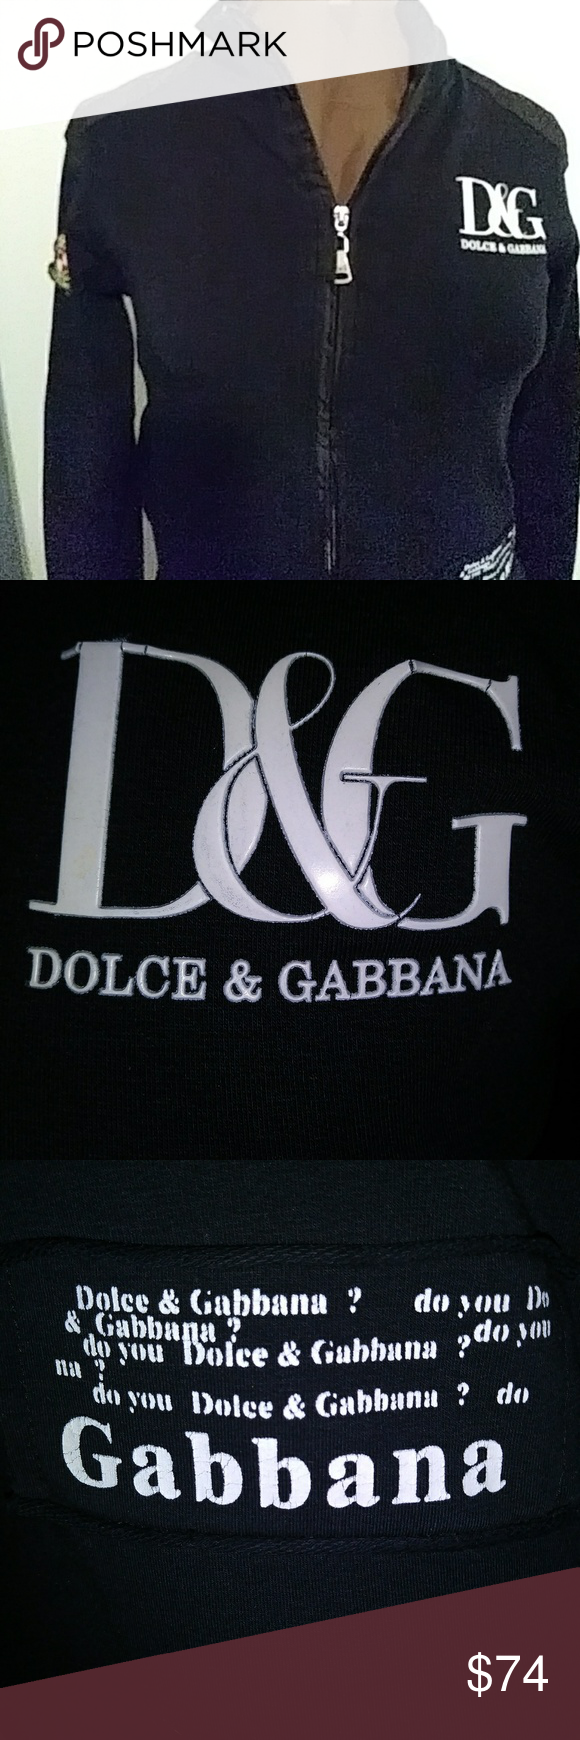 dolce gabana logo sweatshirt d g sz m up for grabs is this dolce gabbana logo sweatshirt in black and white and it sweatshirts dolce gabbana logo dolce pinterest